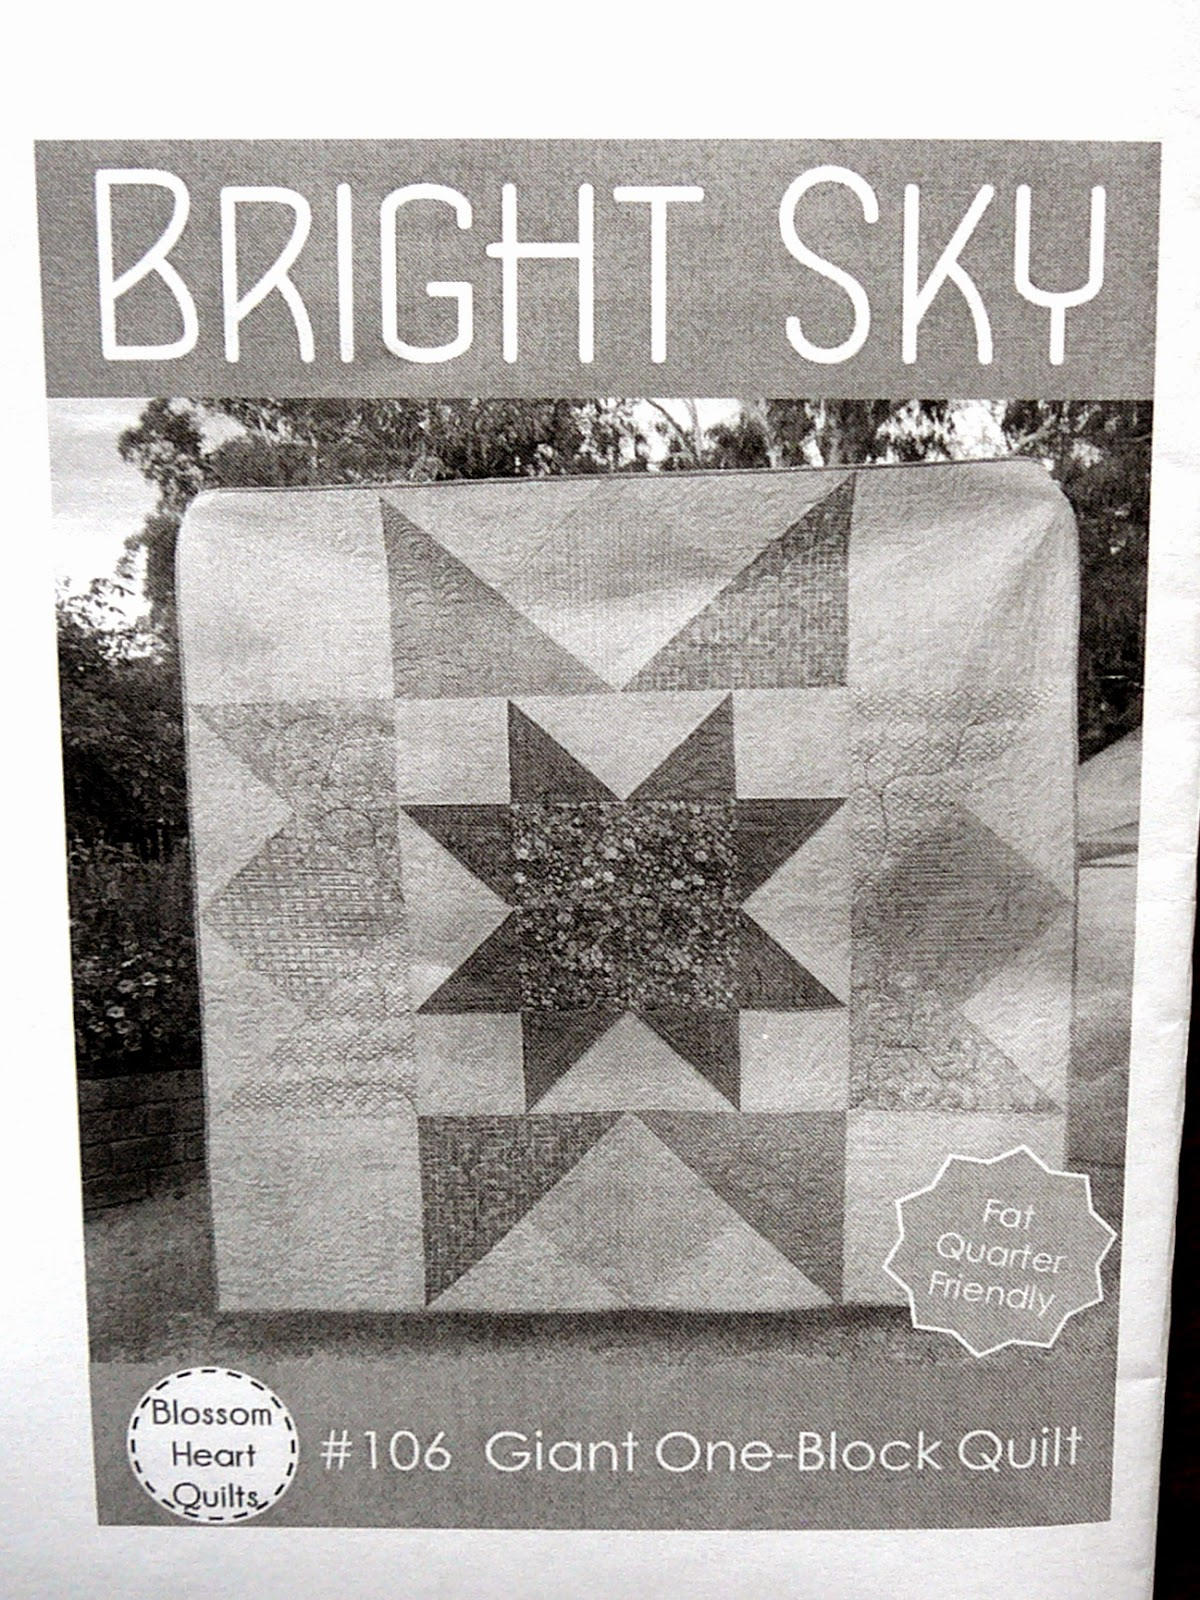 http://www.craftsy.com/pattern/quilting/home-decor/bright-sky/89729